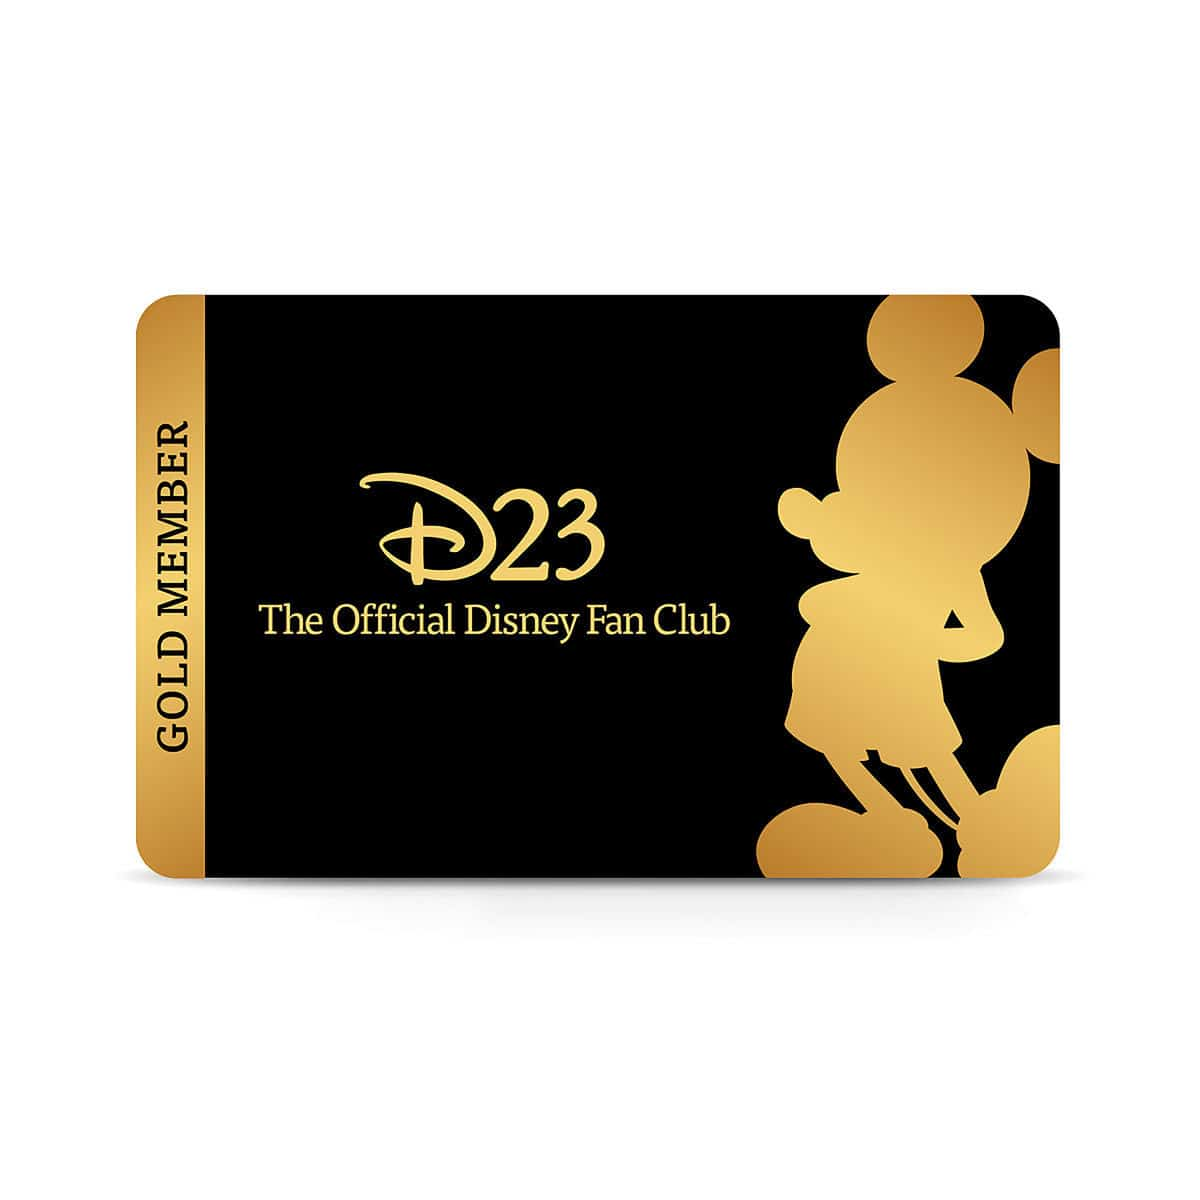 D23: The Official Disney Fan Club